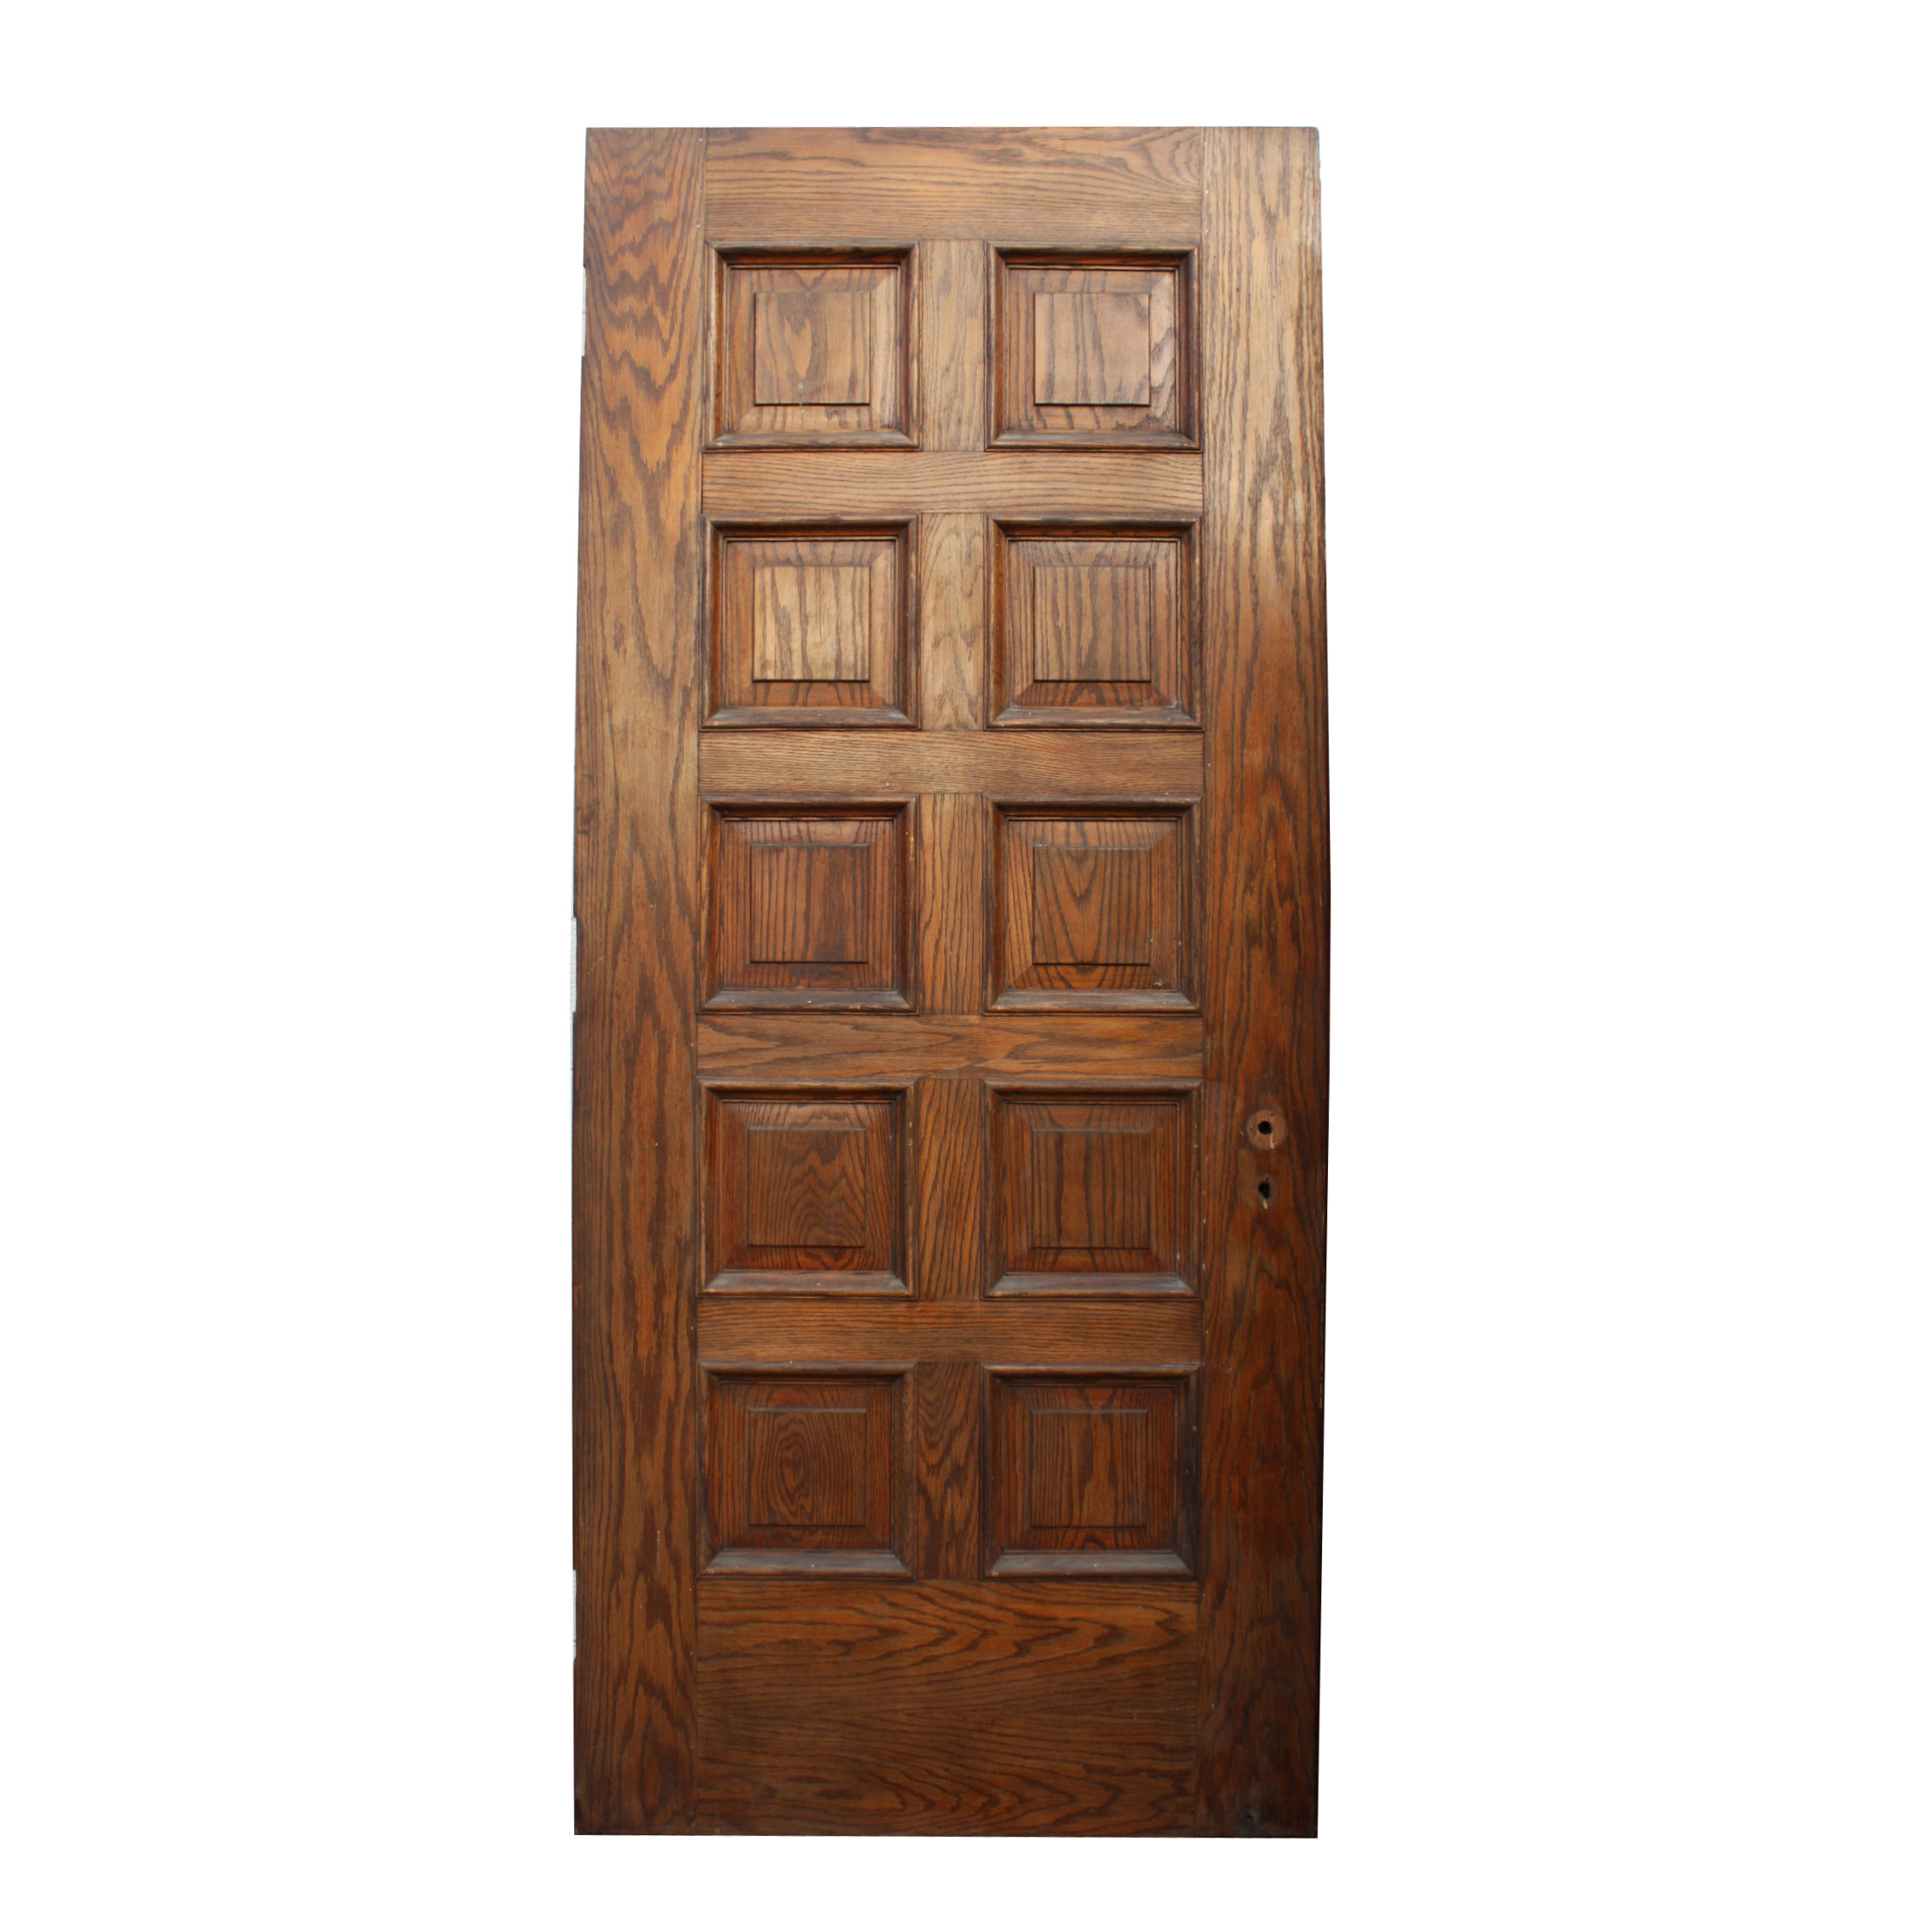 Vintage solid wood interior doors look noble and expensive interior exterior doors designs for Antique looking interior doors